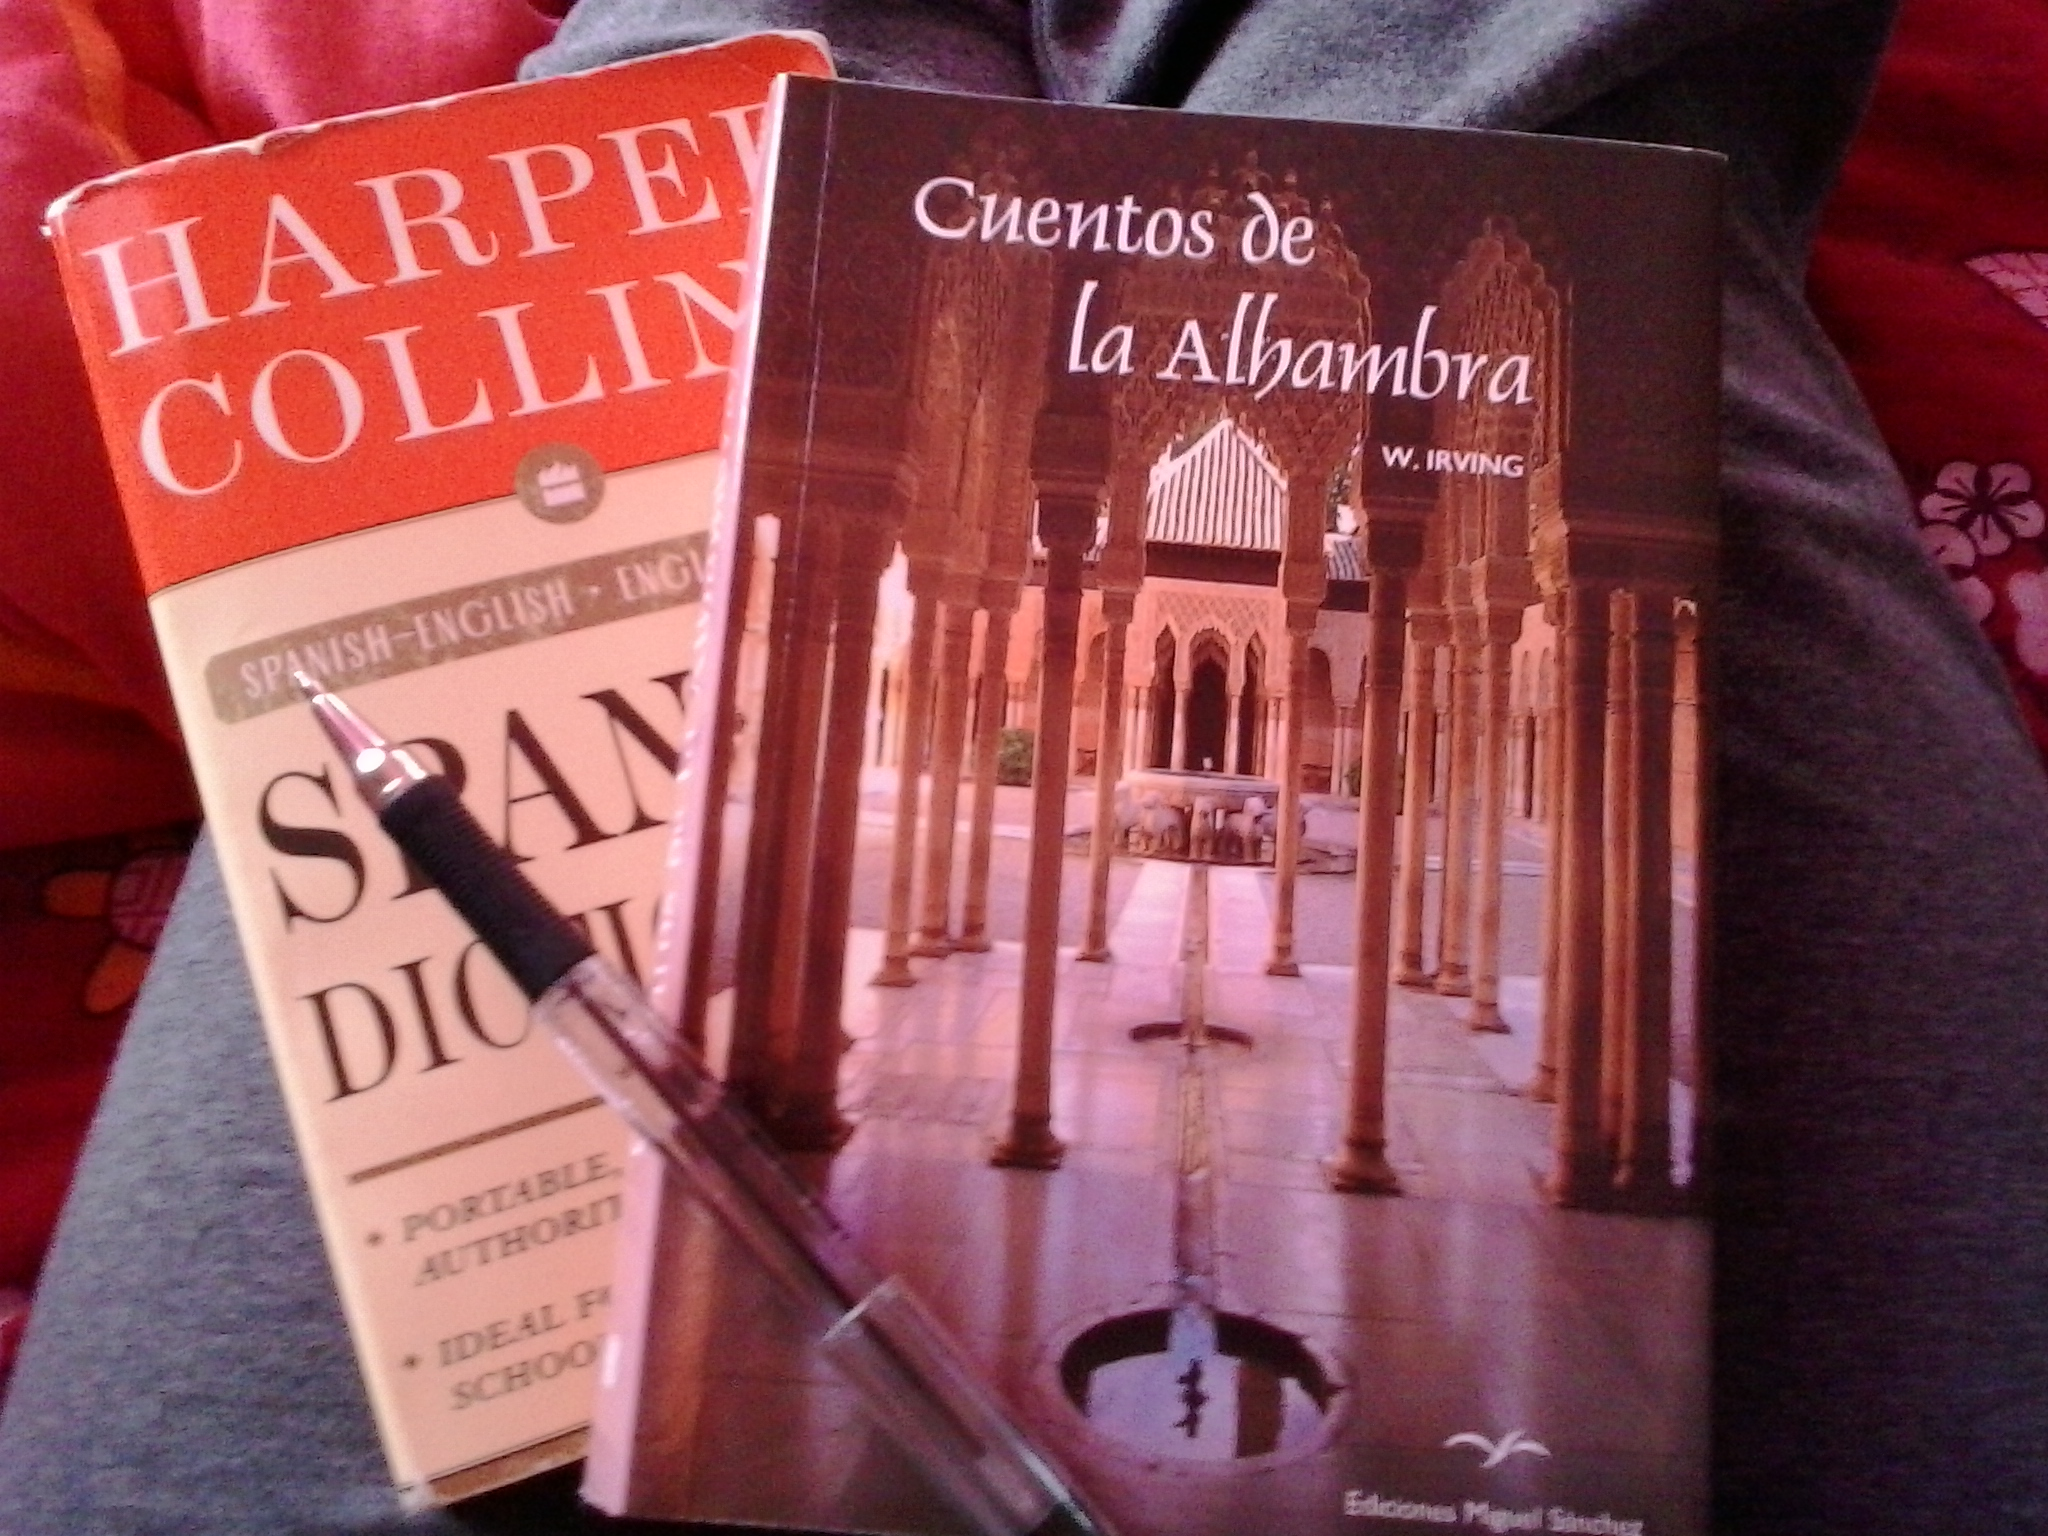 When being back home feels awkward, it's incredible the comfort I have found in reading  Cuentos de la Alhambra  and being transported back to my home in Granada.